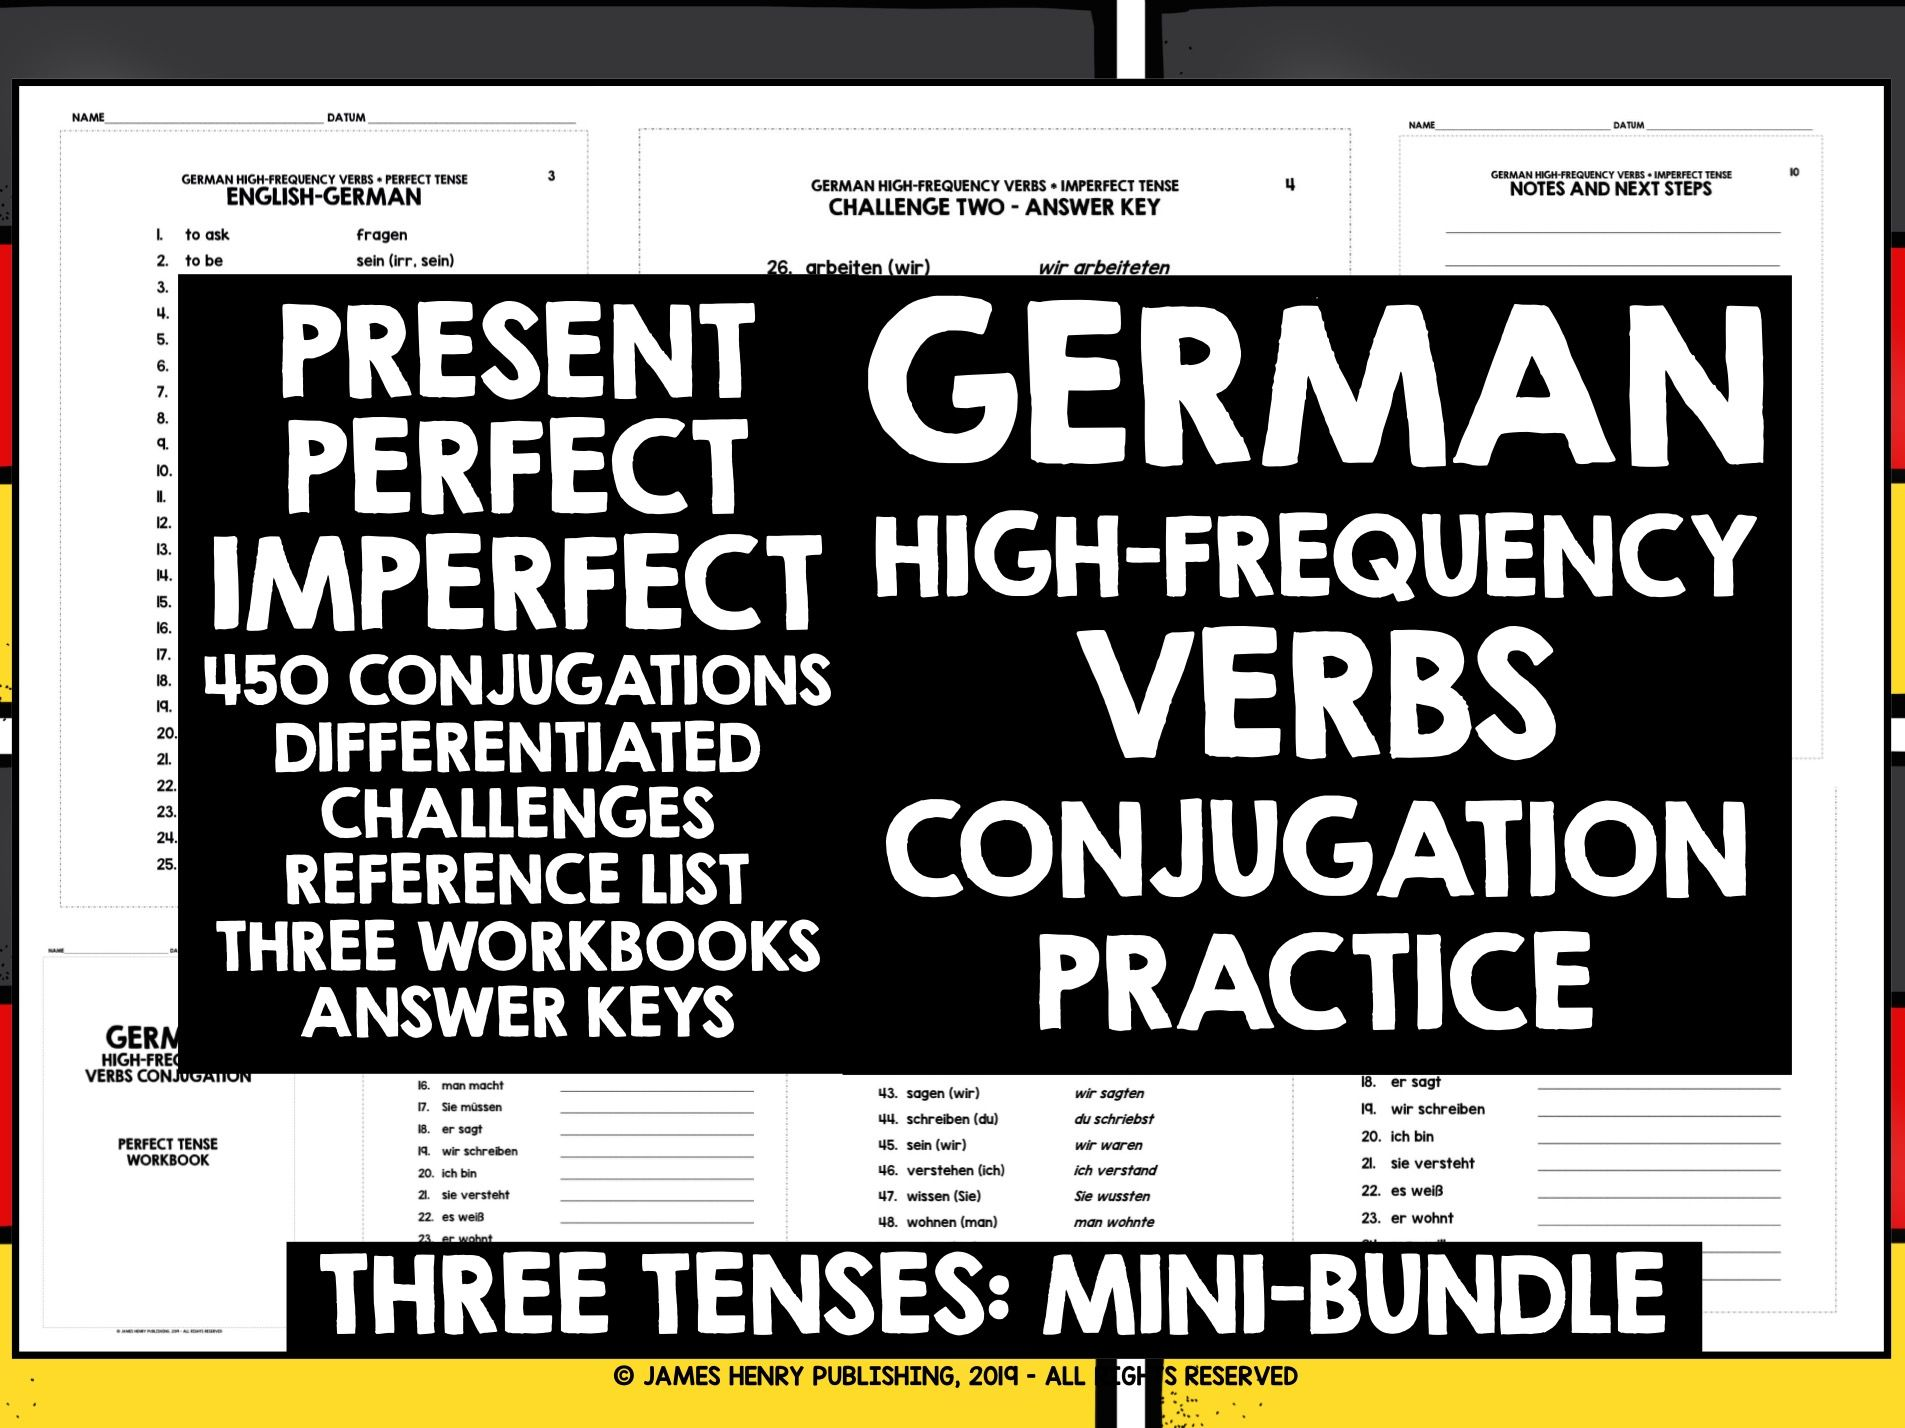 GERMAN HIGH-FREQUENCY VERBS CONJUGATION MINI-BUNDLE #1